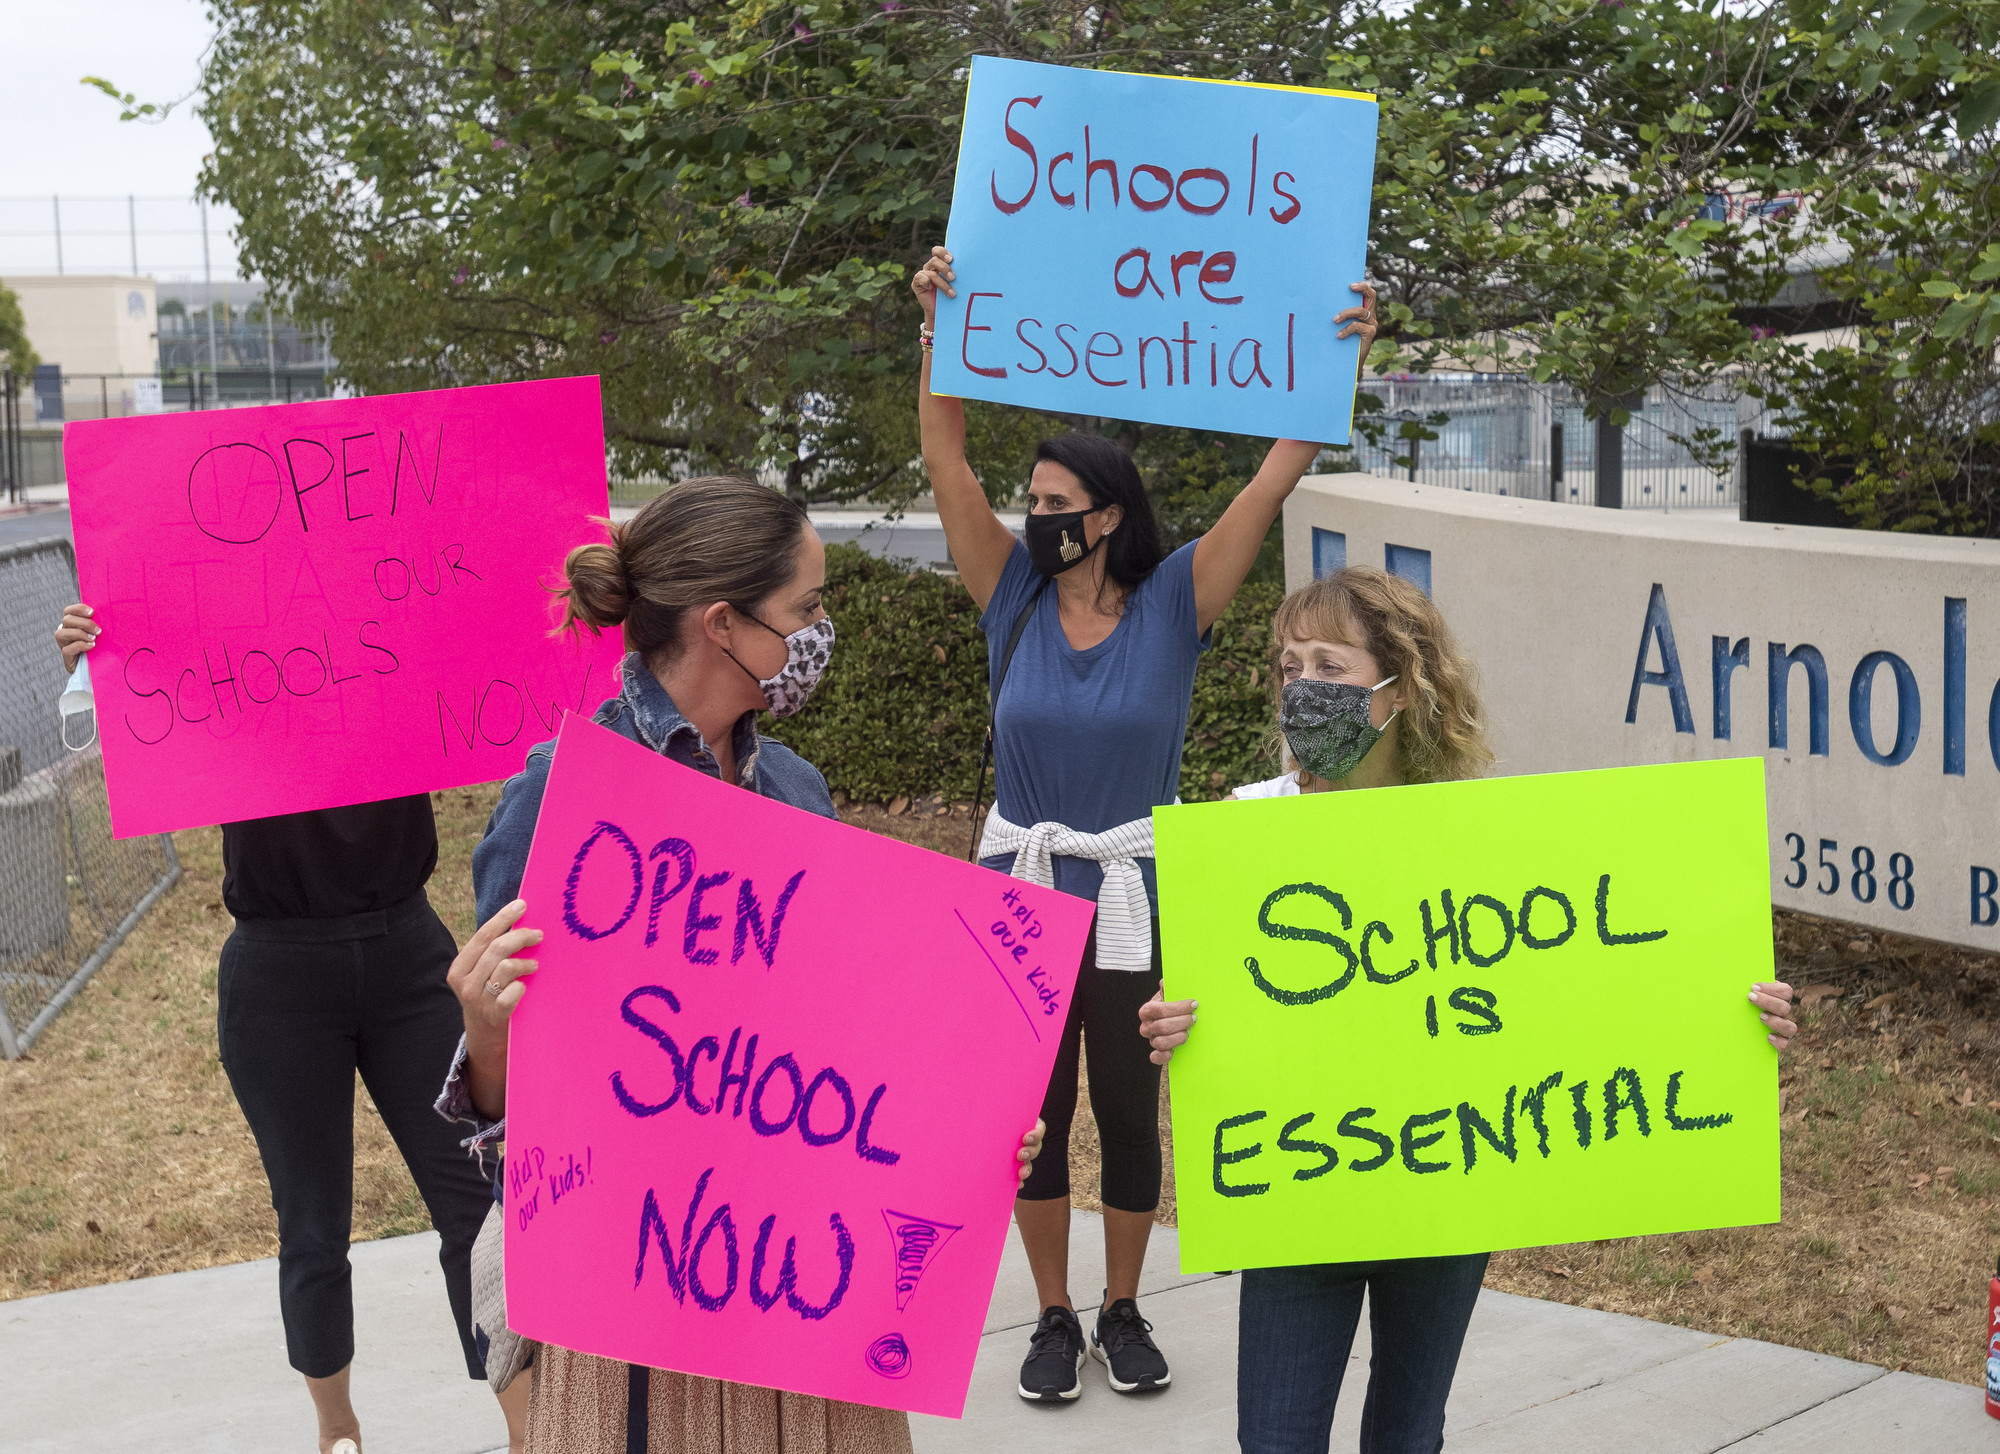 Protesters rally for schools to be reopened for full, in-person instruction outside Beckman High School in Irvine, Calif., on Sept. 8, 2020.